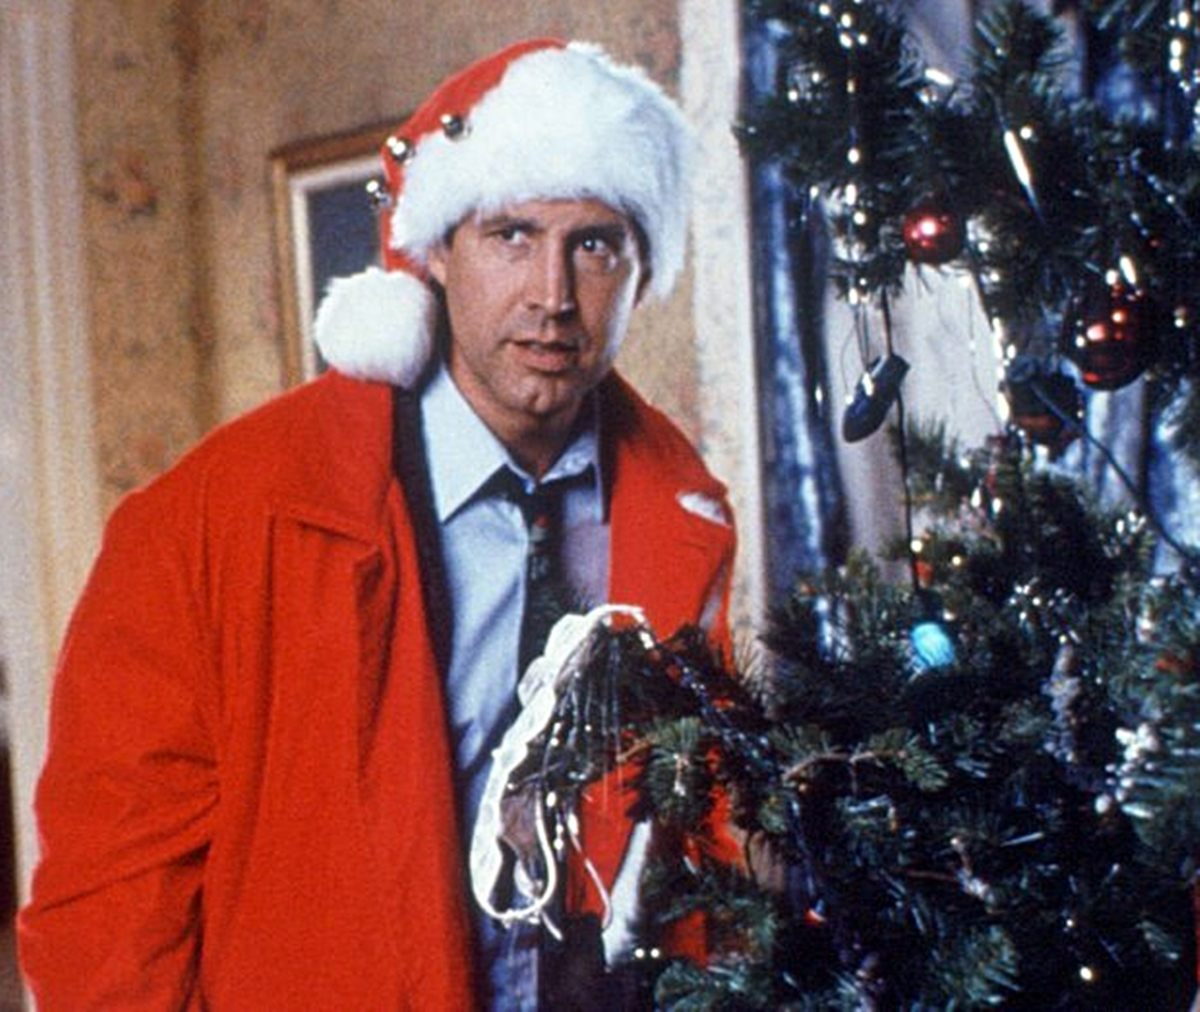 3 18 30 Things You Probably Didn't Know About National Lampoon's Christmas Vacation